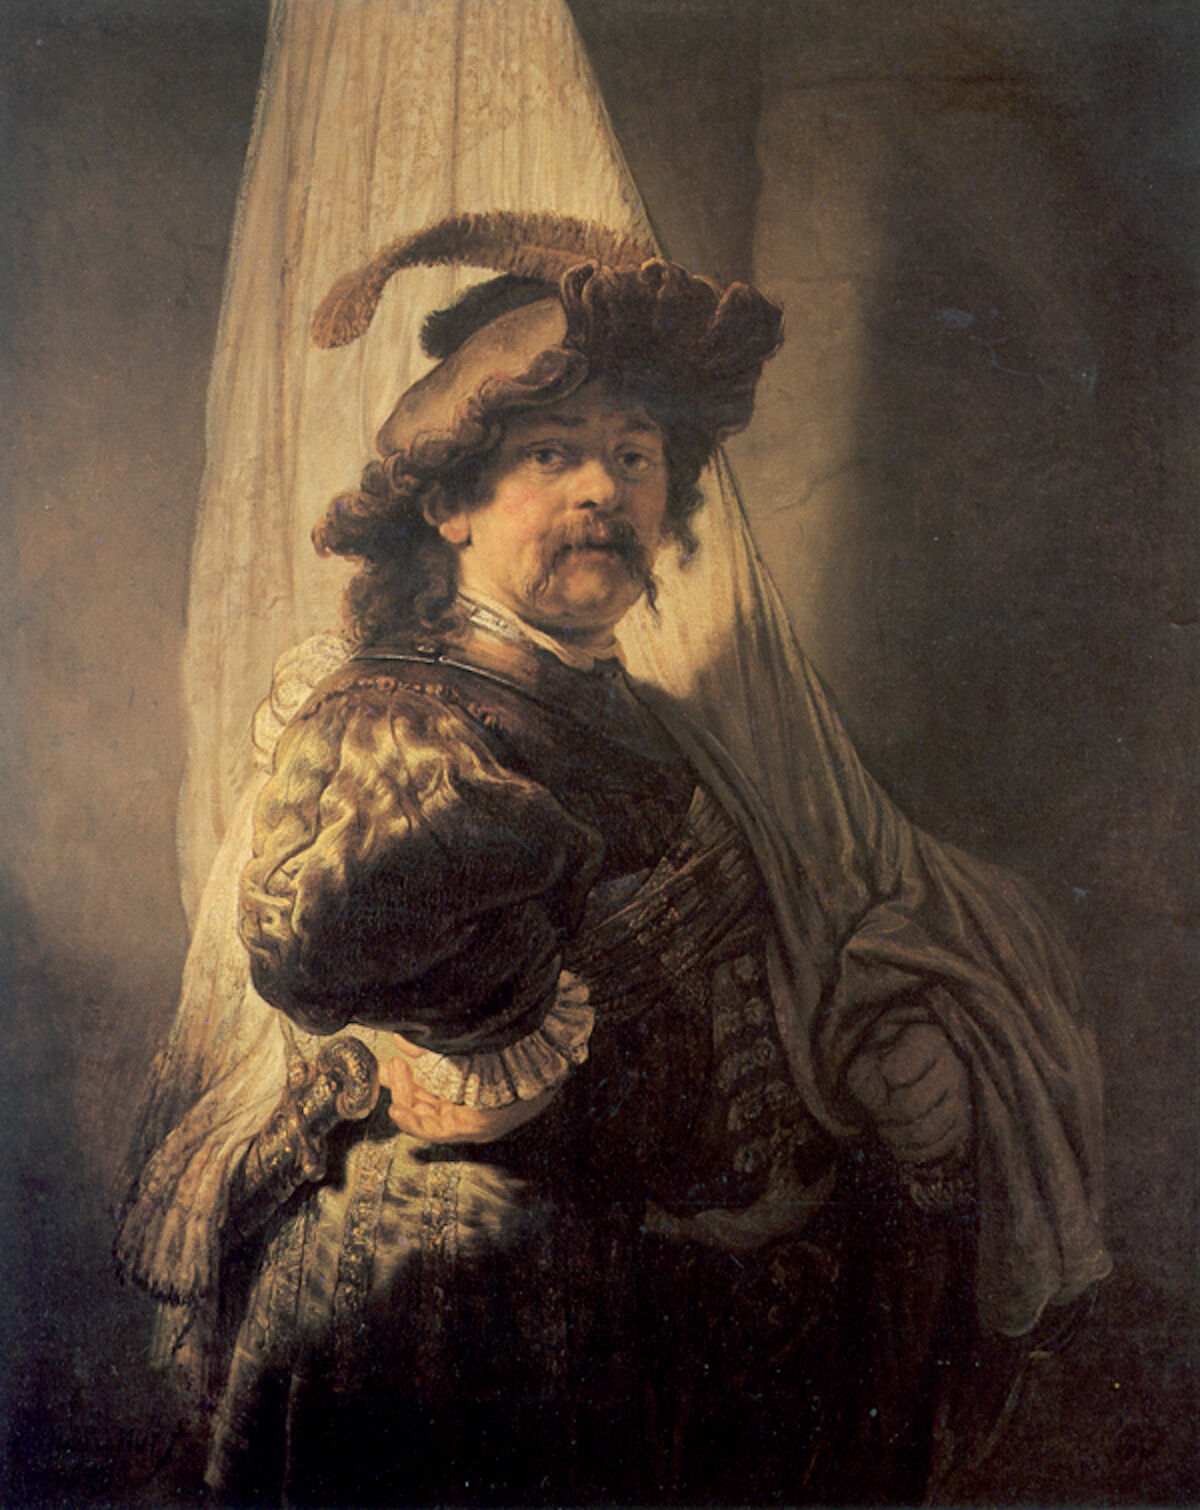 Rembrandt, The Standard Bearer, 1636. Via Wikimedia Commons.